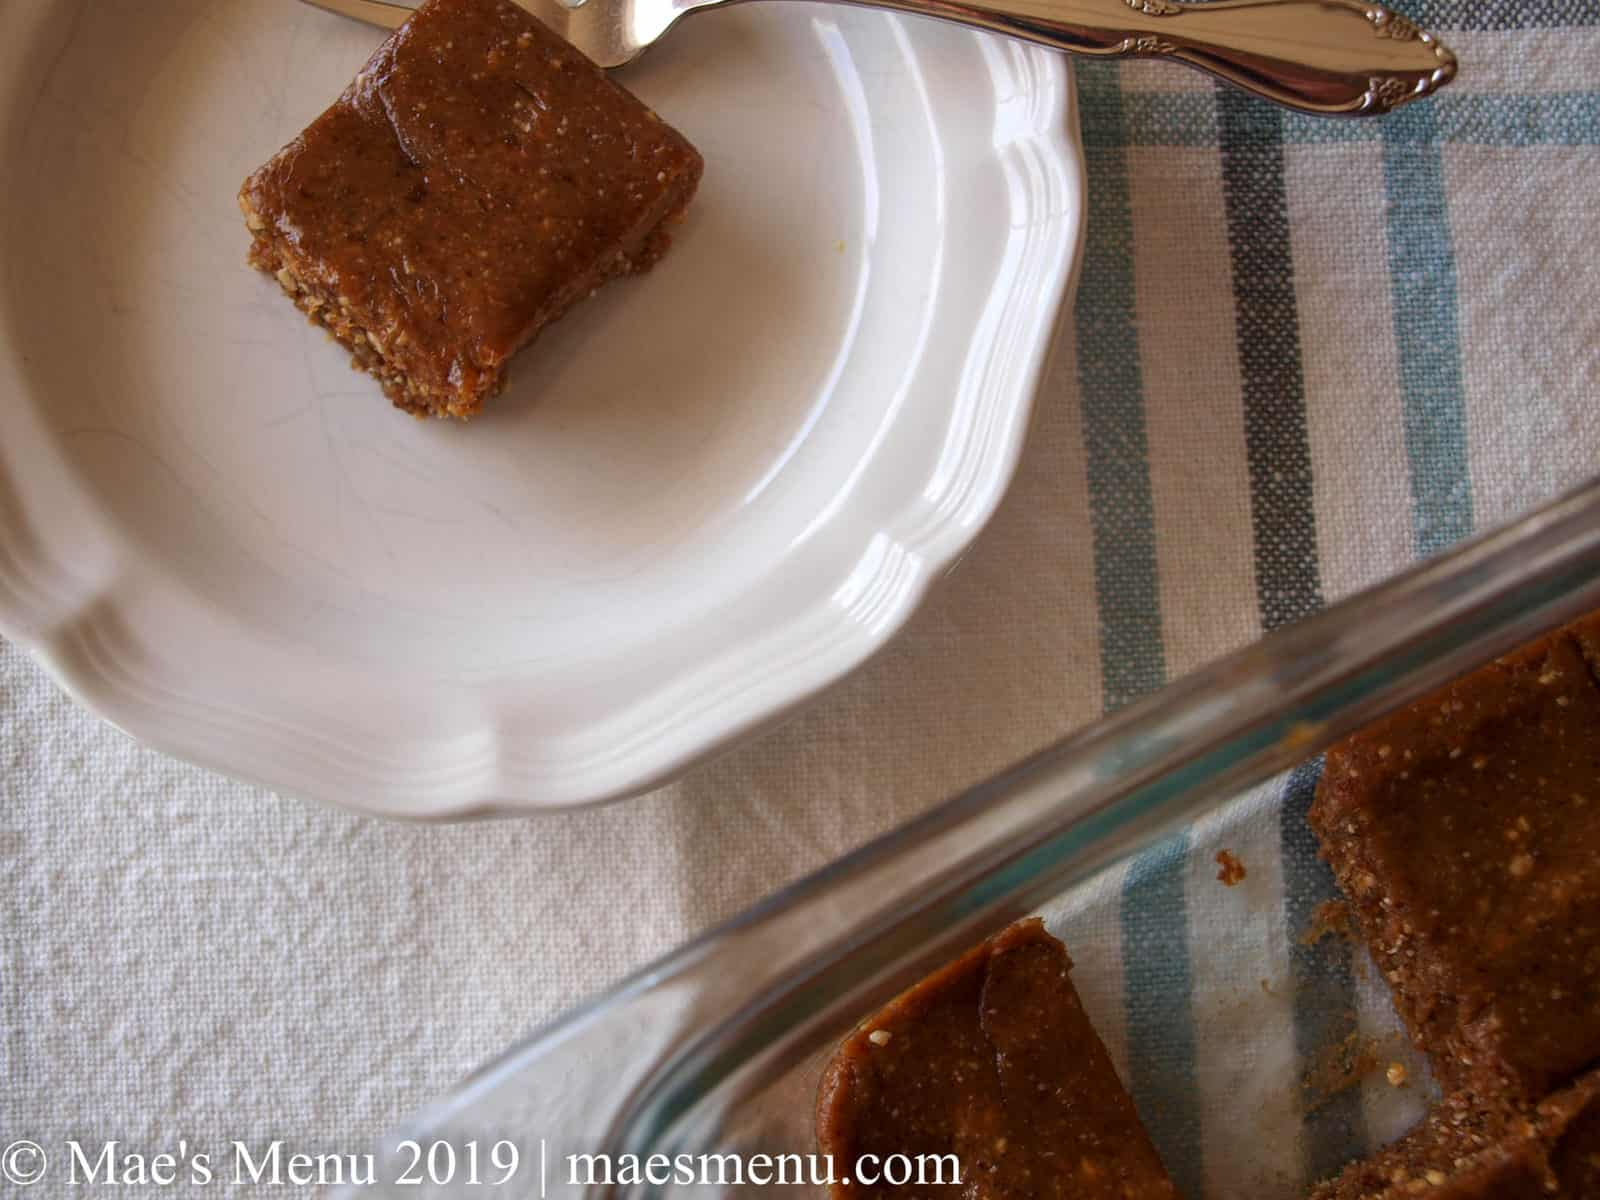 Peanut butter & Jelly larabars recipe cut into small squares and 1 square on a white small dish.